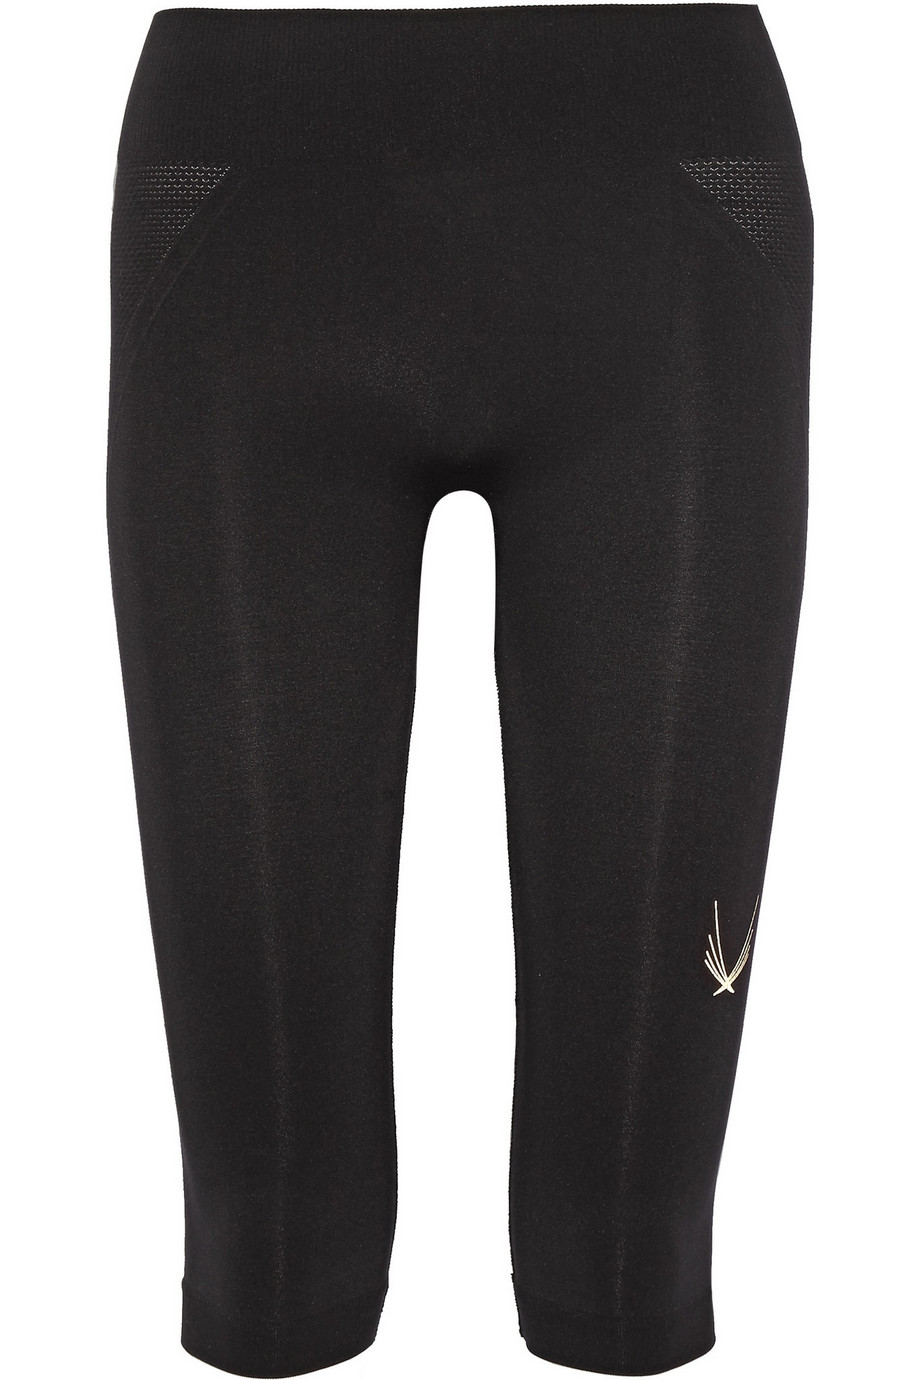 Lucas Hugh Technical Knit Stretch Capri Leggings, Black, Women's